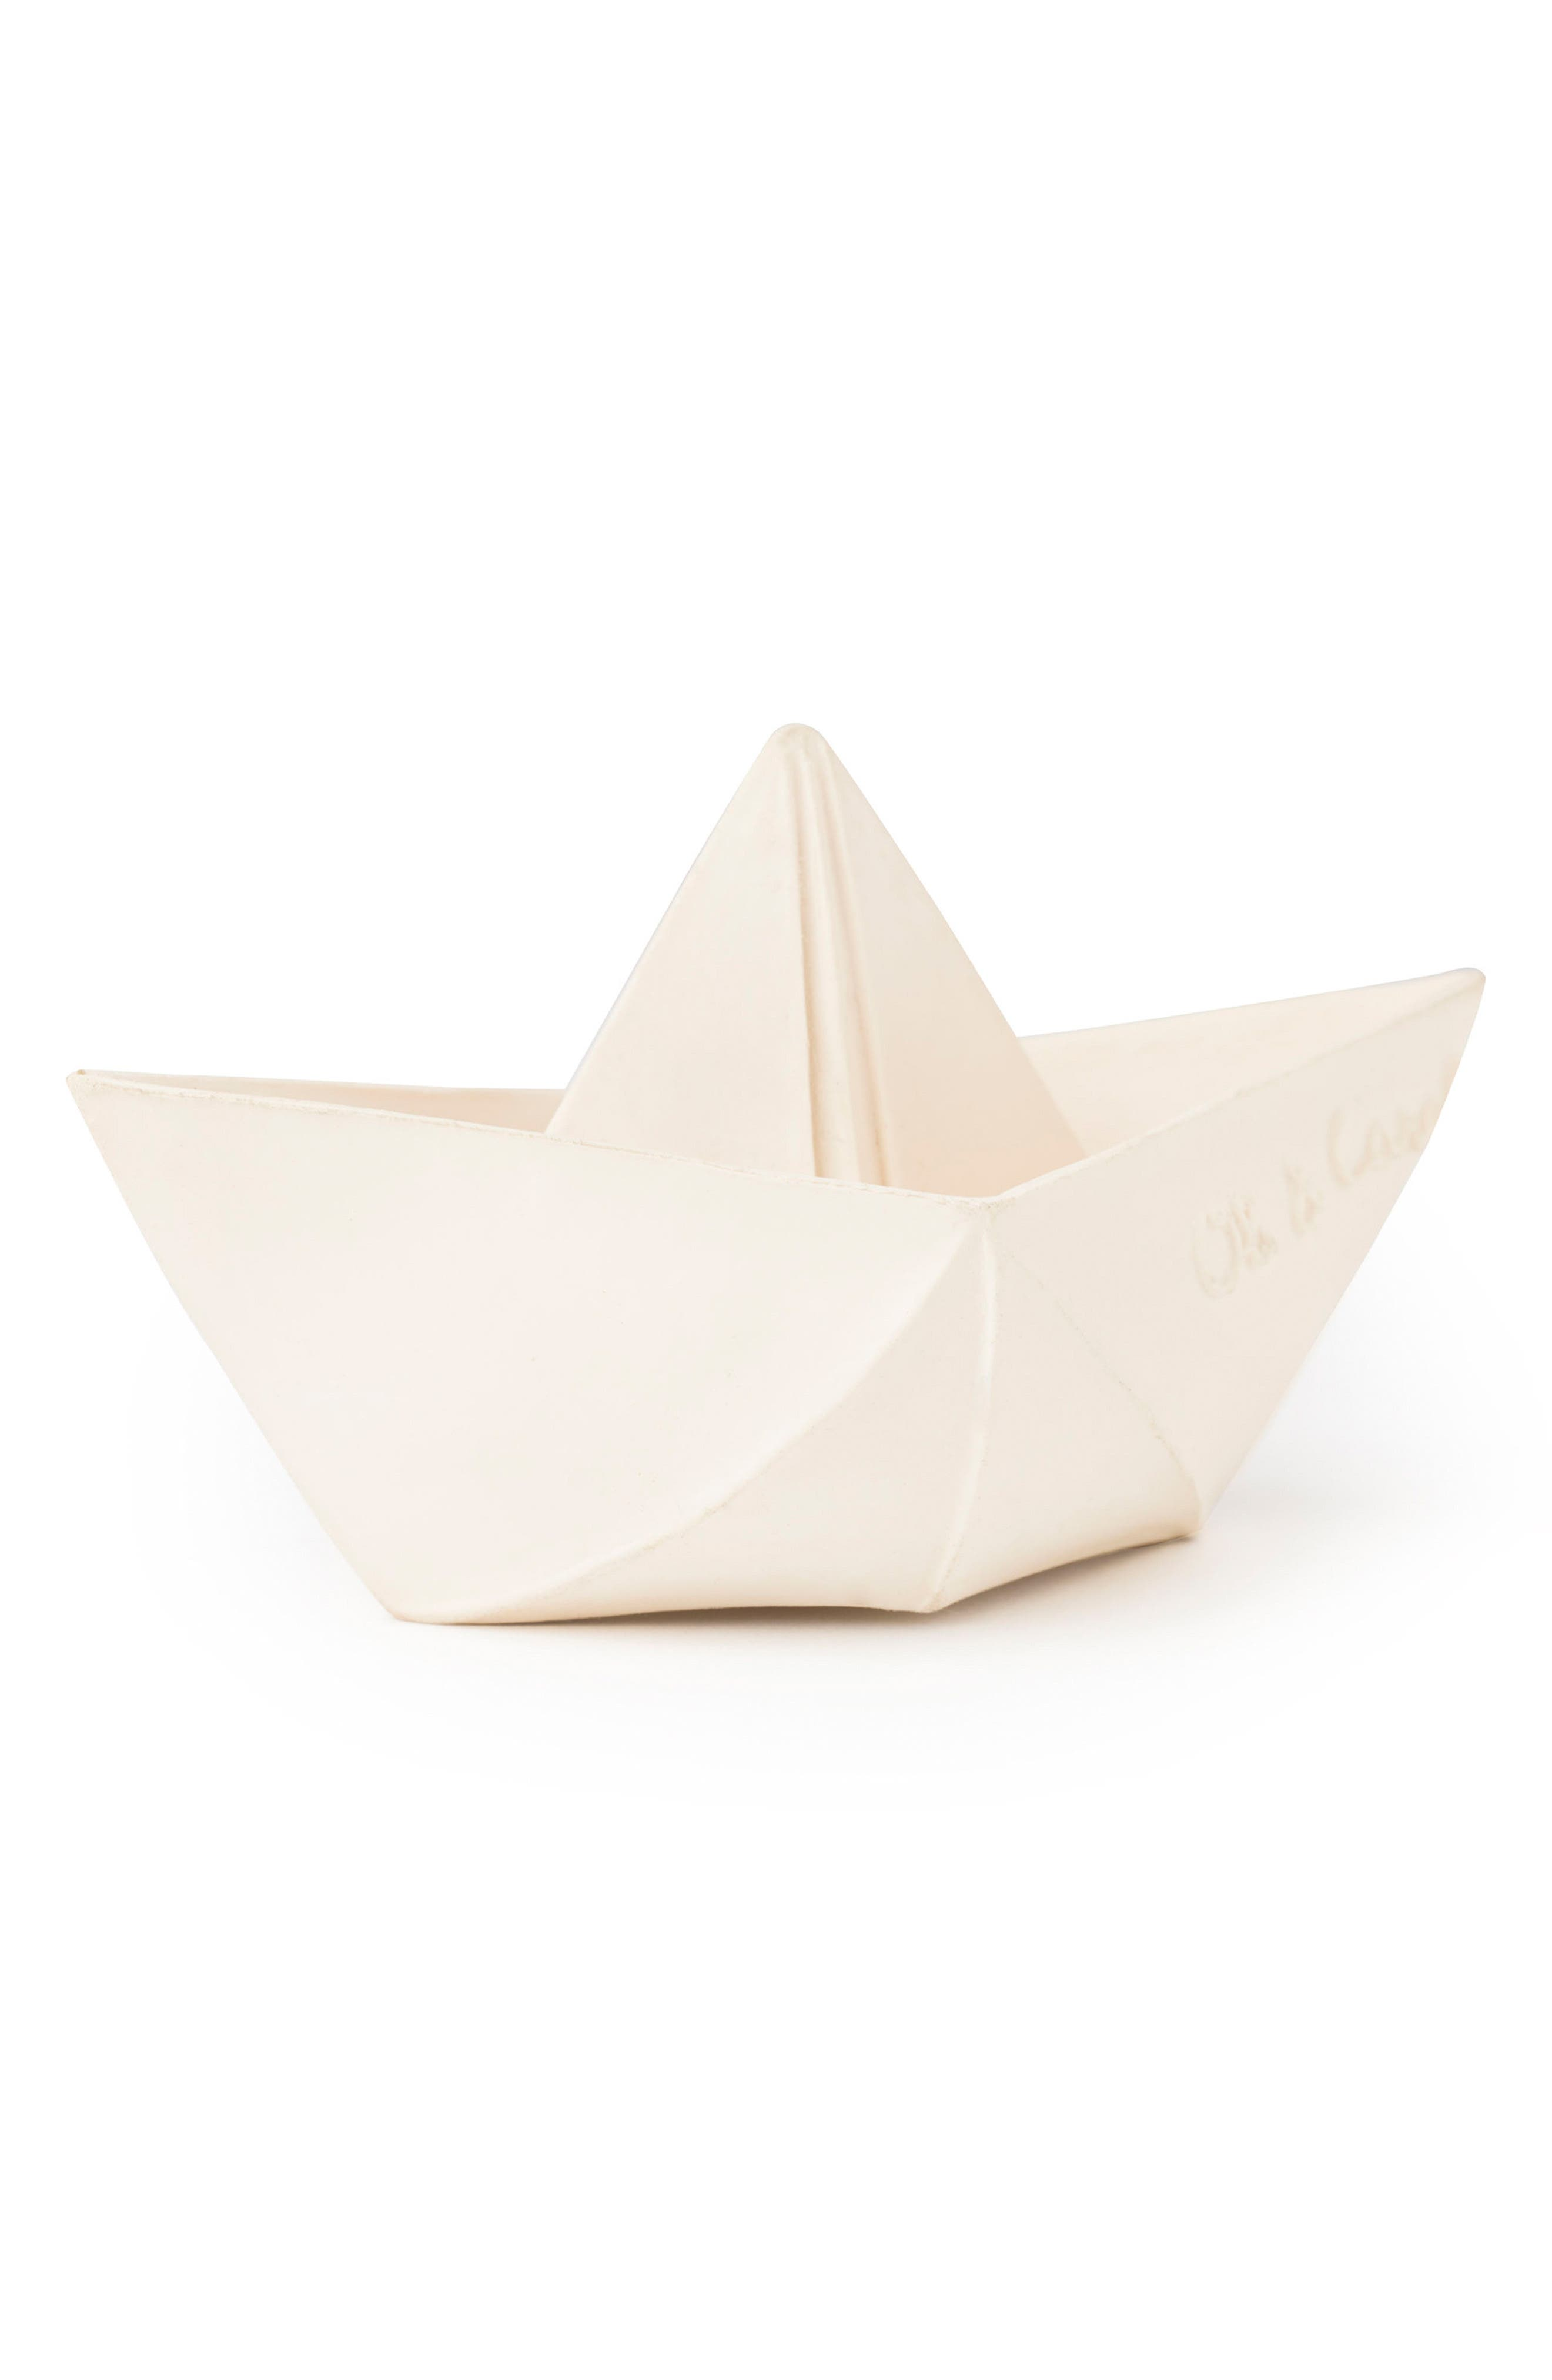 Origami Boat Bath Toy,                             Main thumbnail 1, color,                             WHITE